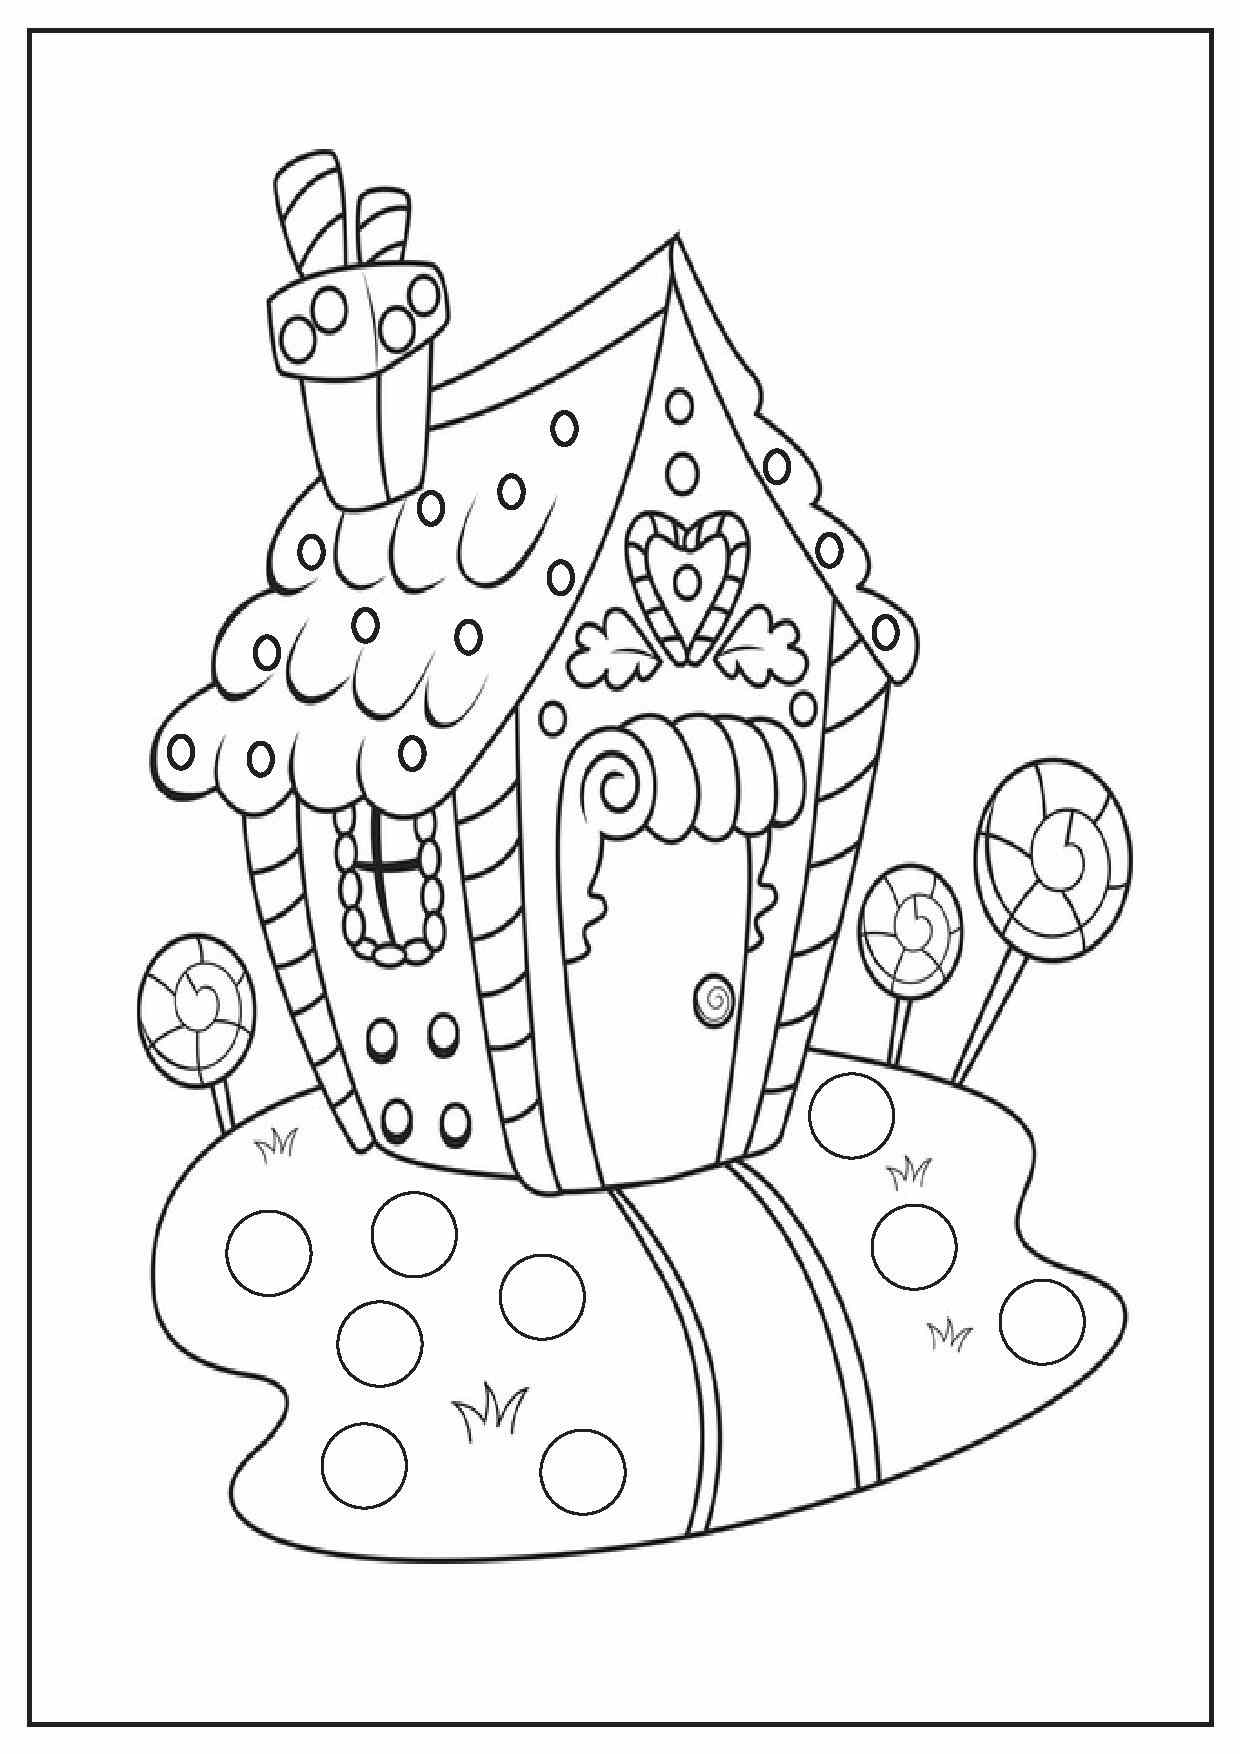 Kindergarten coloring sheets only coloring pages Coloring book for kinder